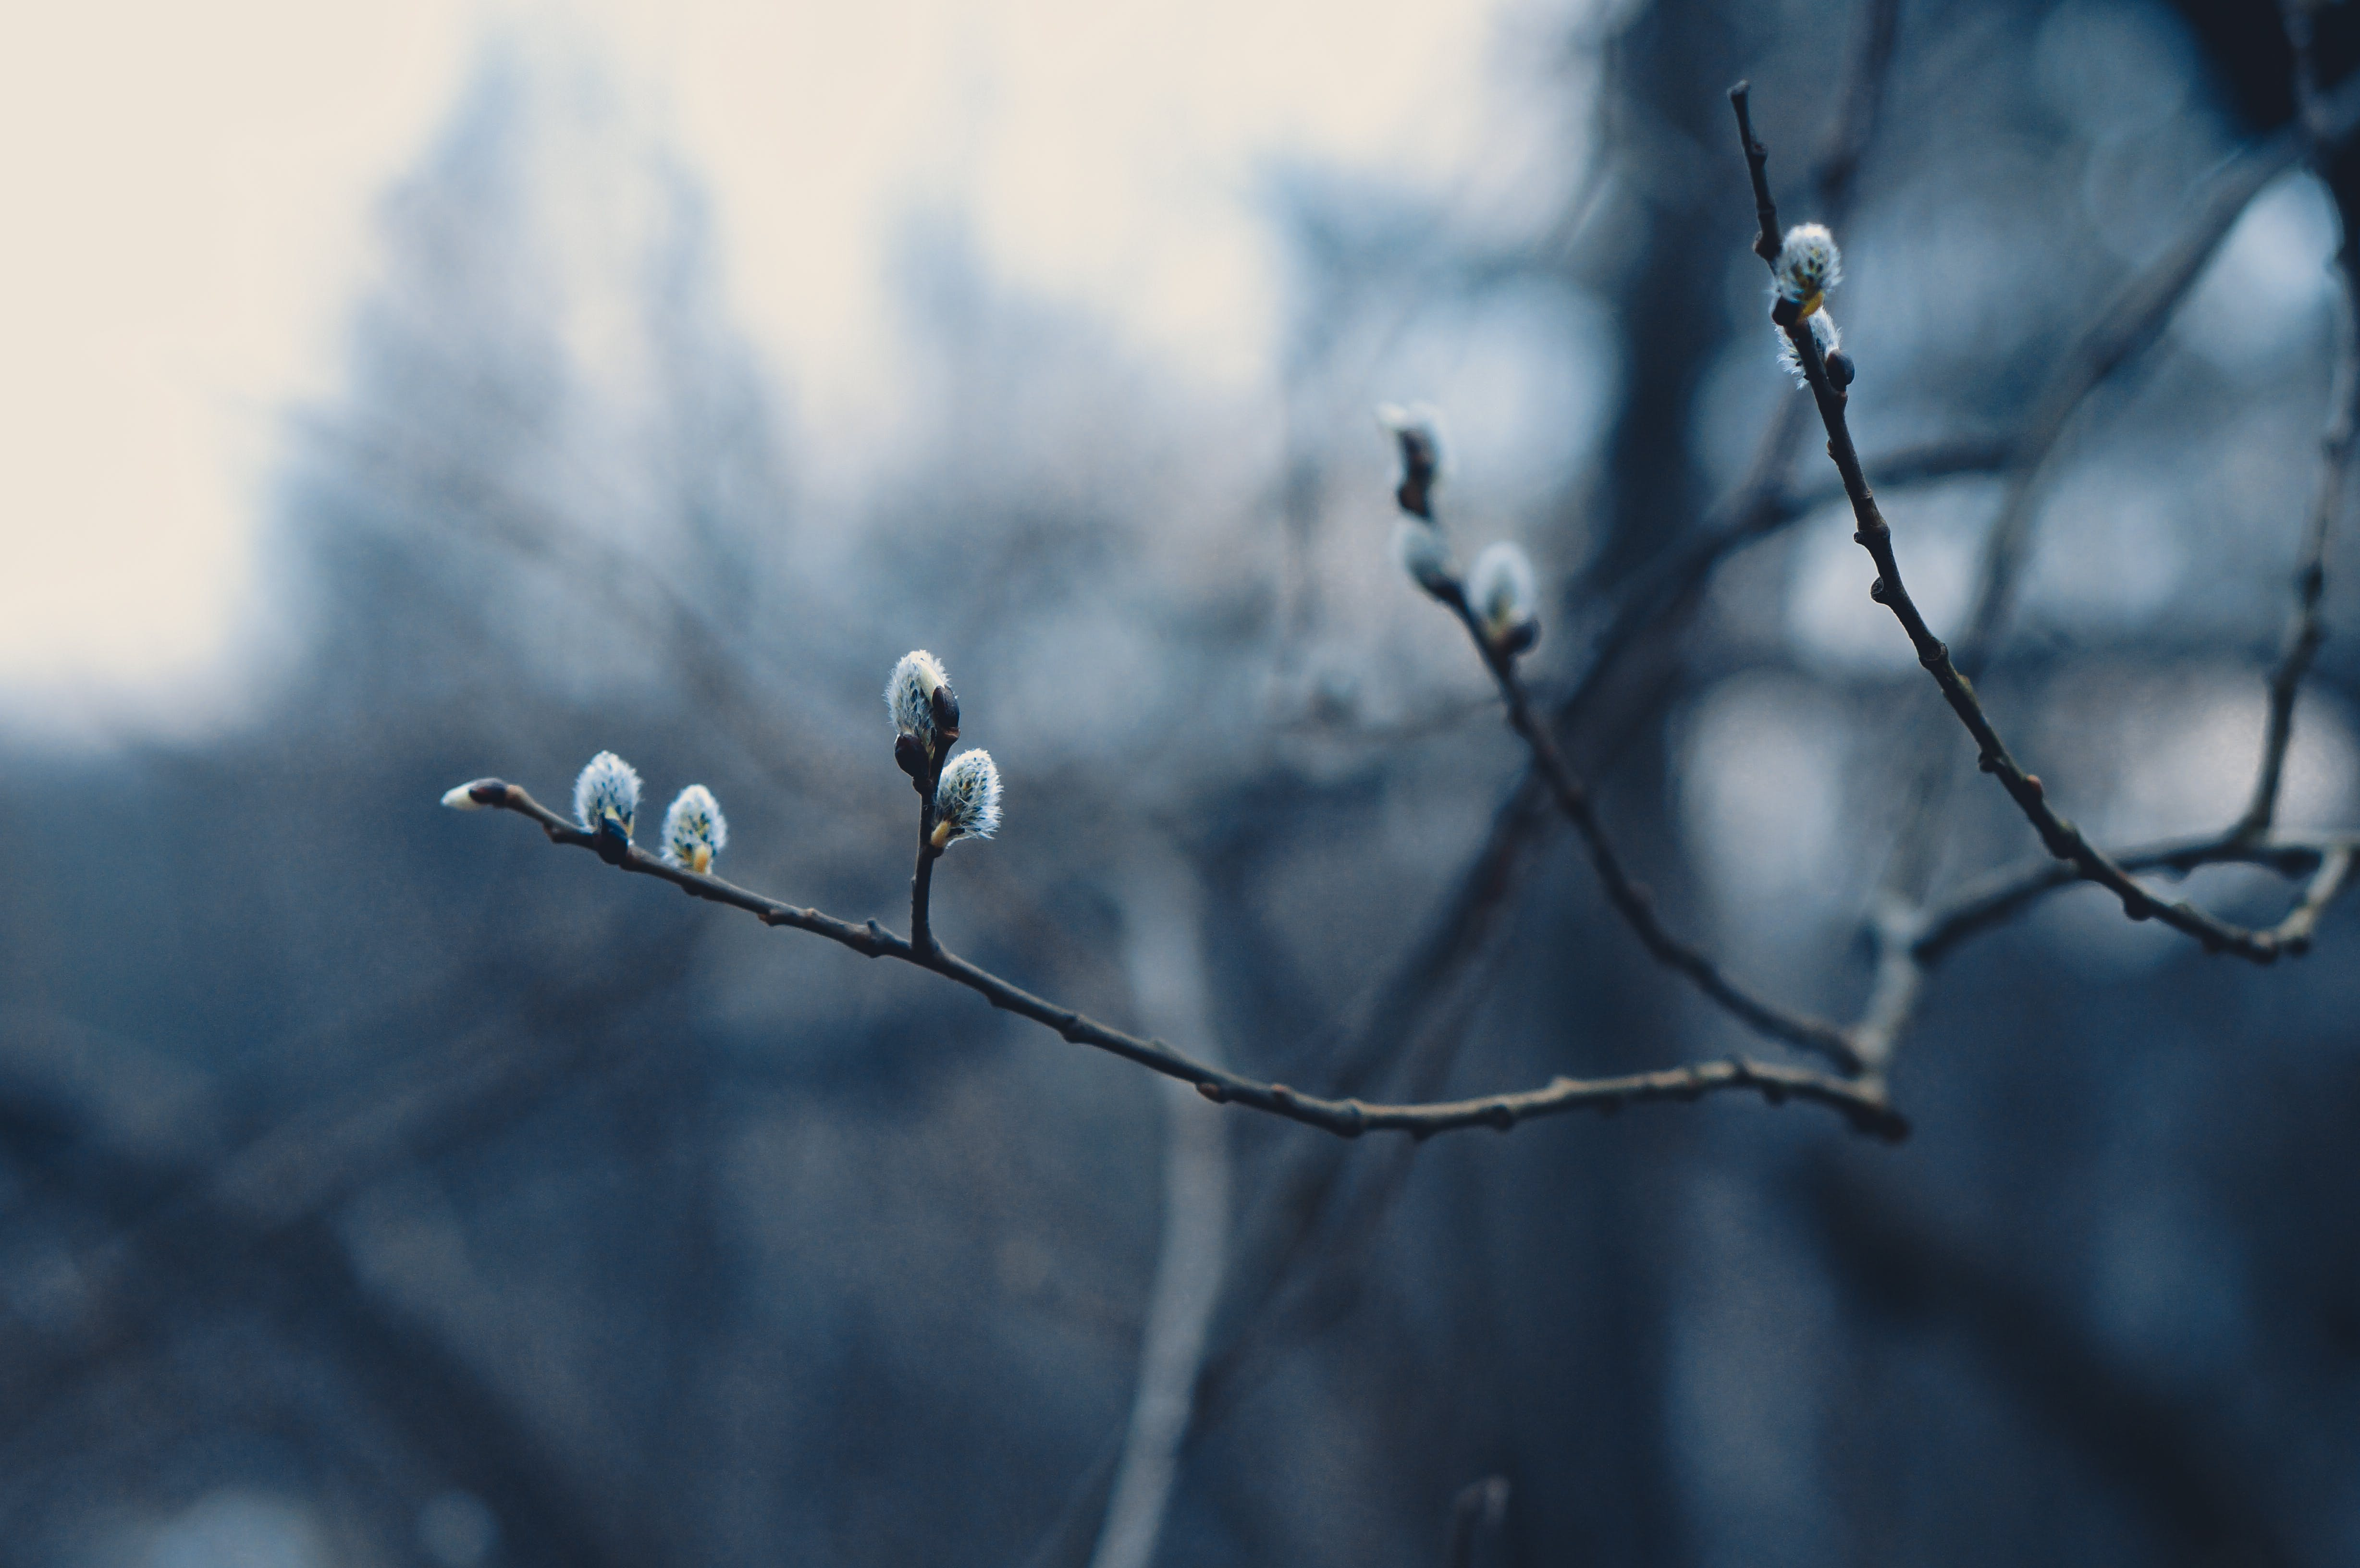 Shallow Focus Photography of Plant Branch